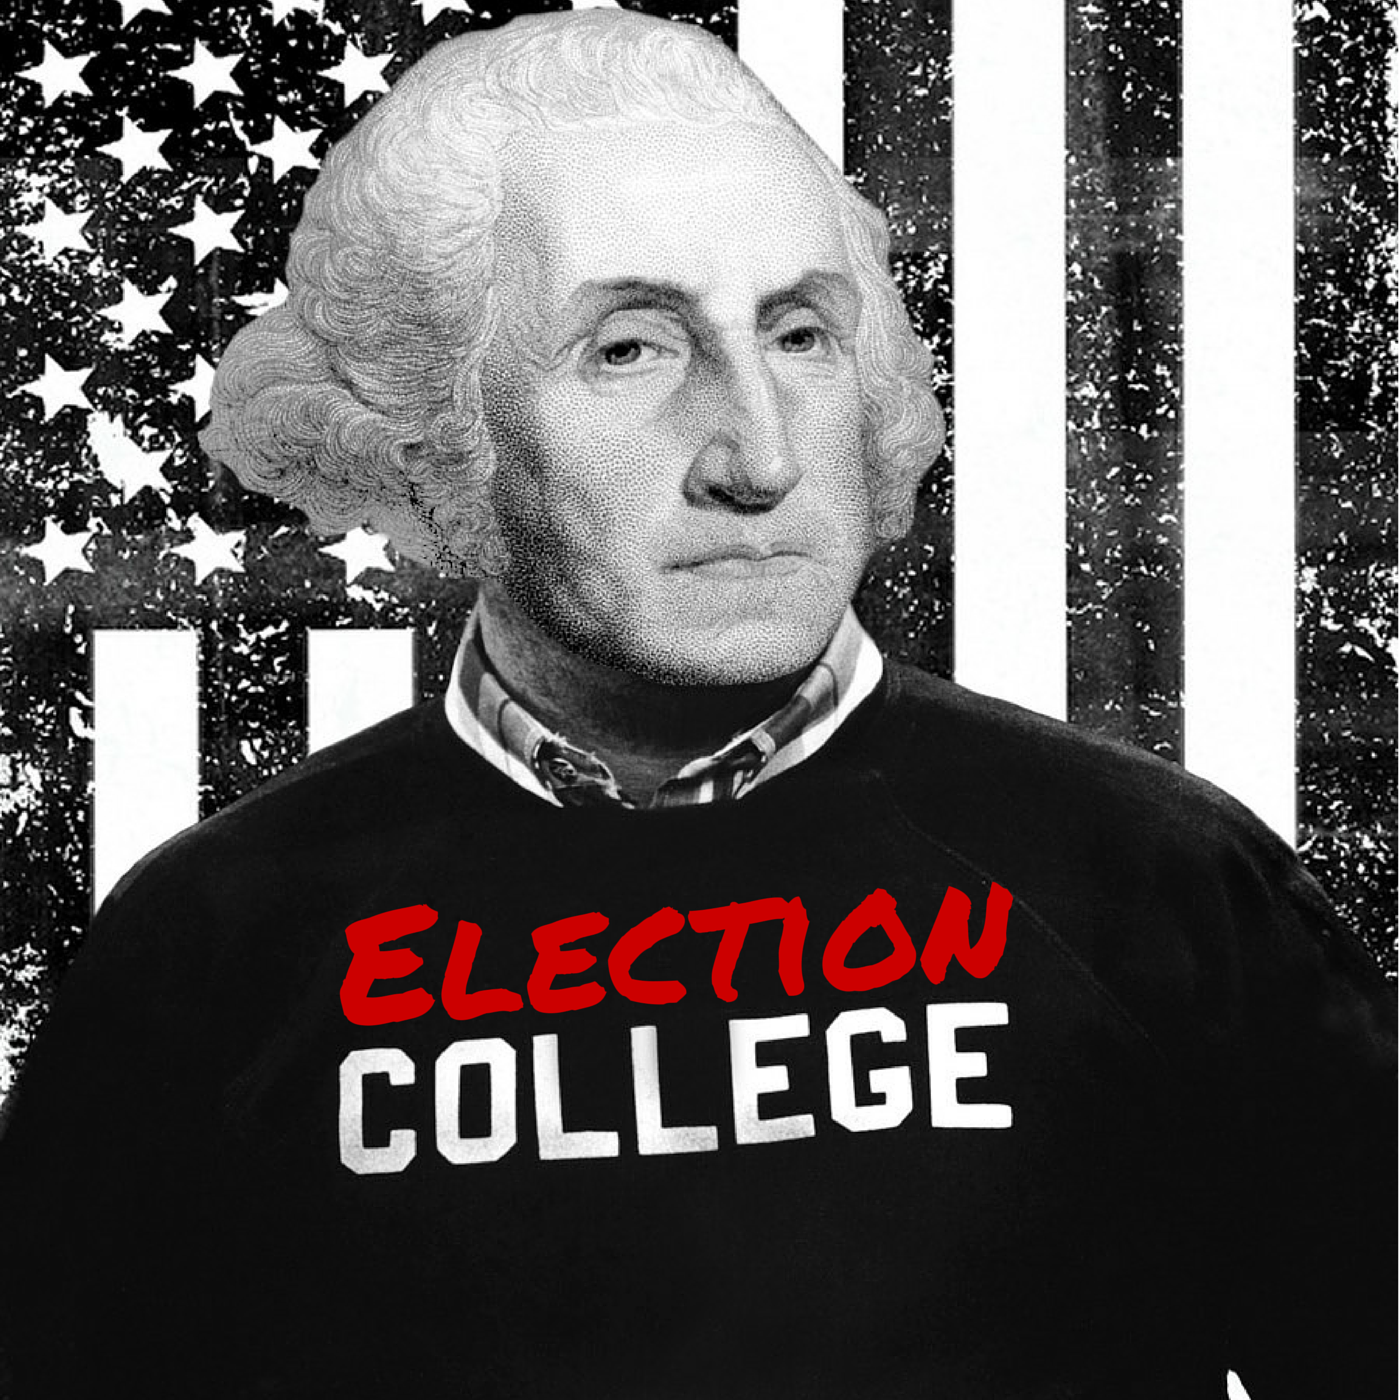 Martin Van Buren - Part 1 | Episode #177 | Election College: United States Presidential Election History